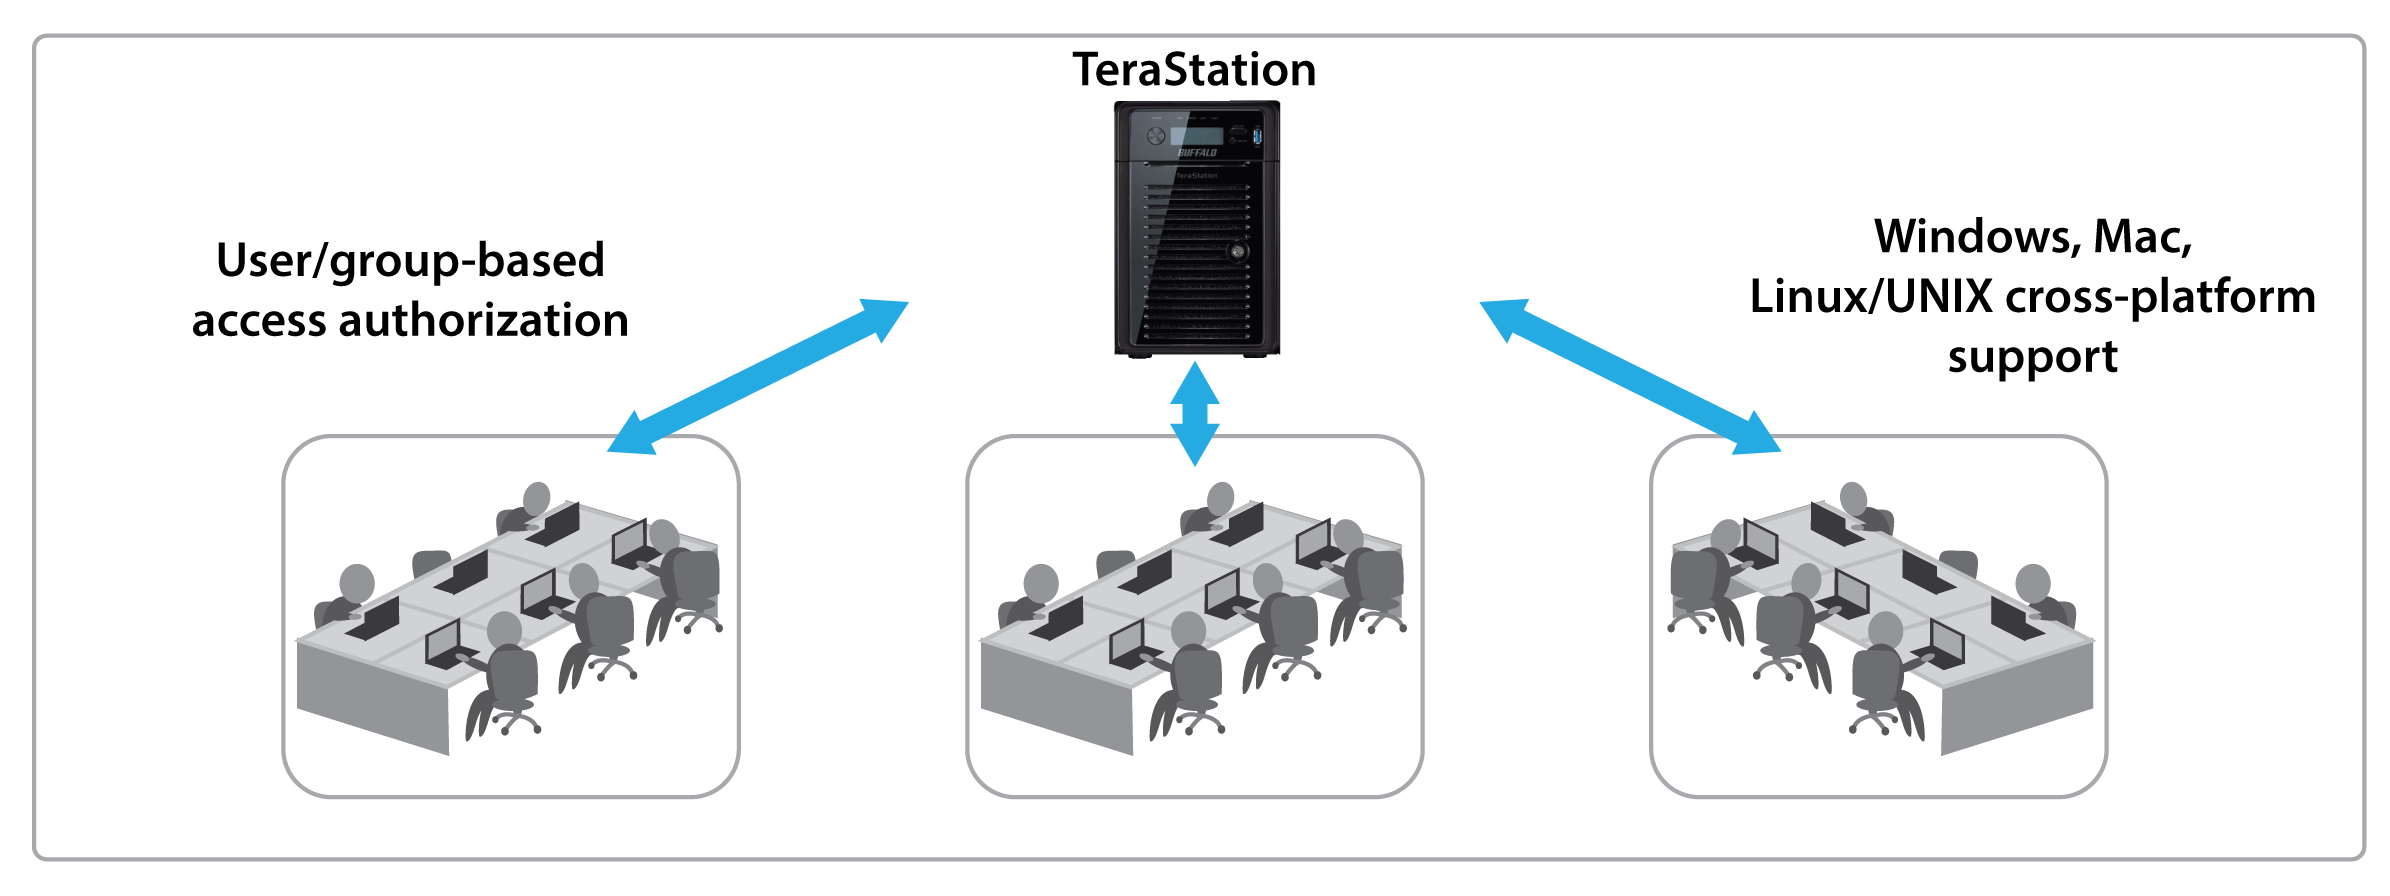 terastation 5000 reliable and secure network storage